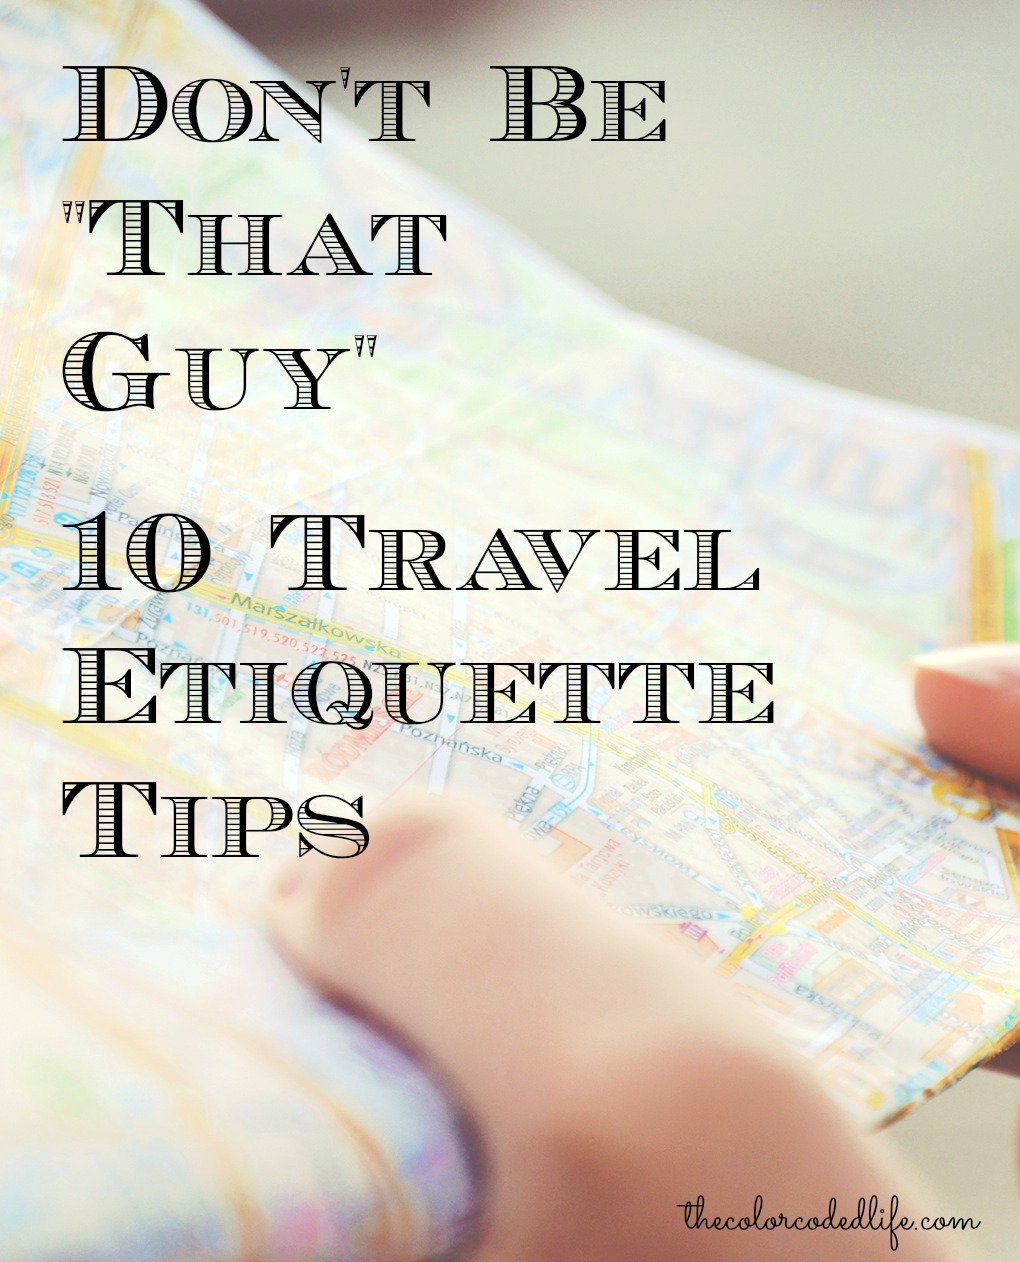 Don't Be That Guy - 10 Travel Etiquette Tips